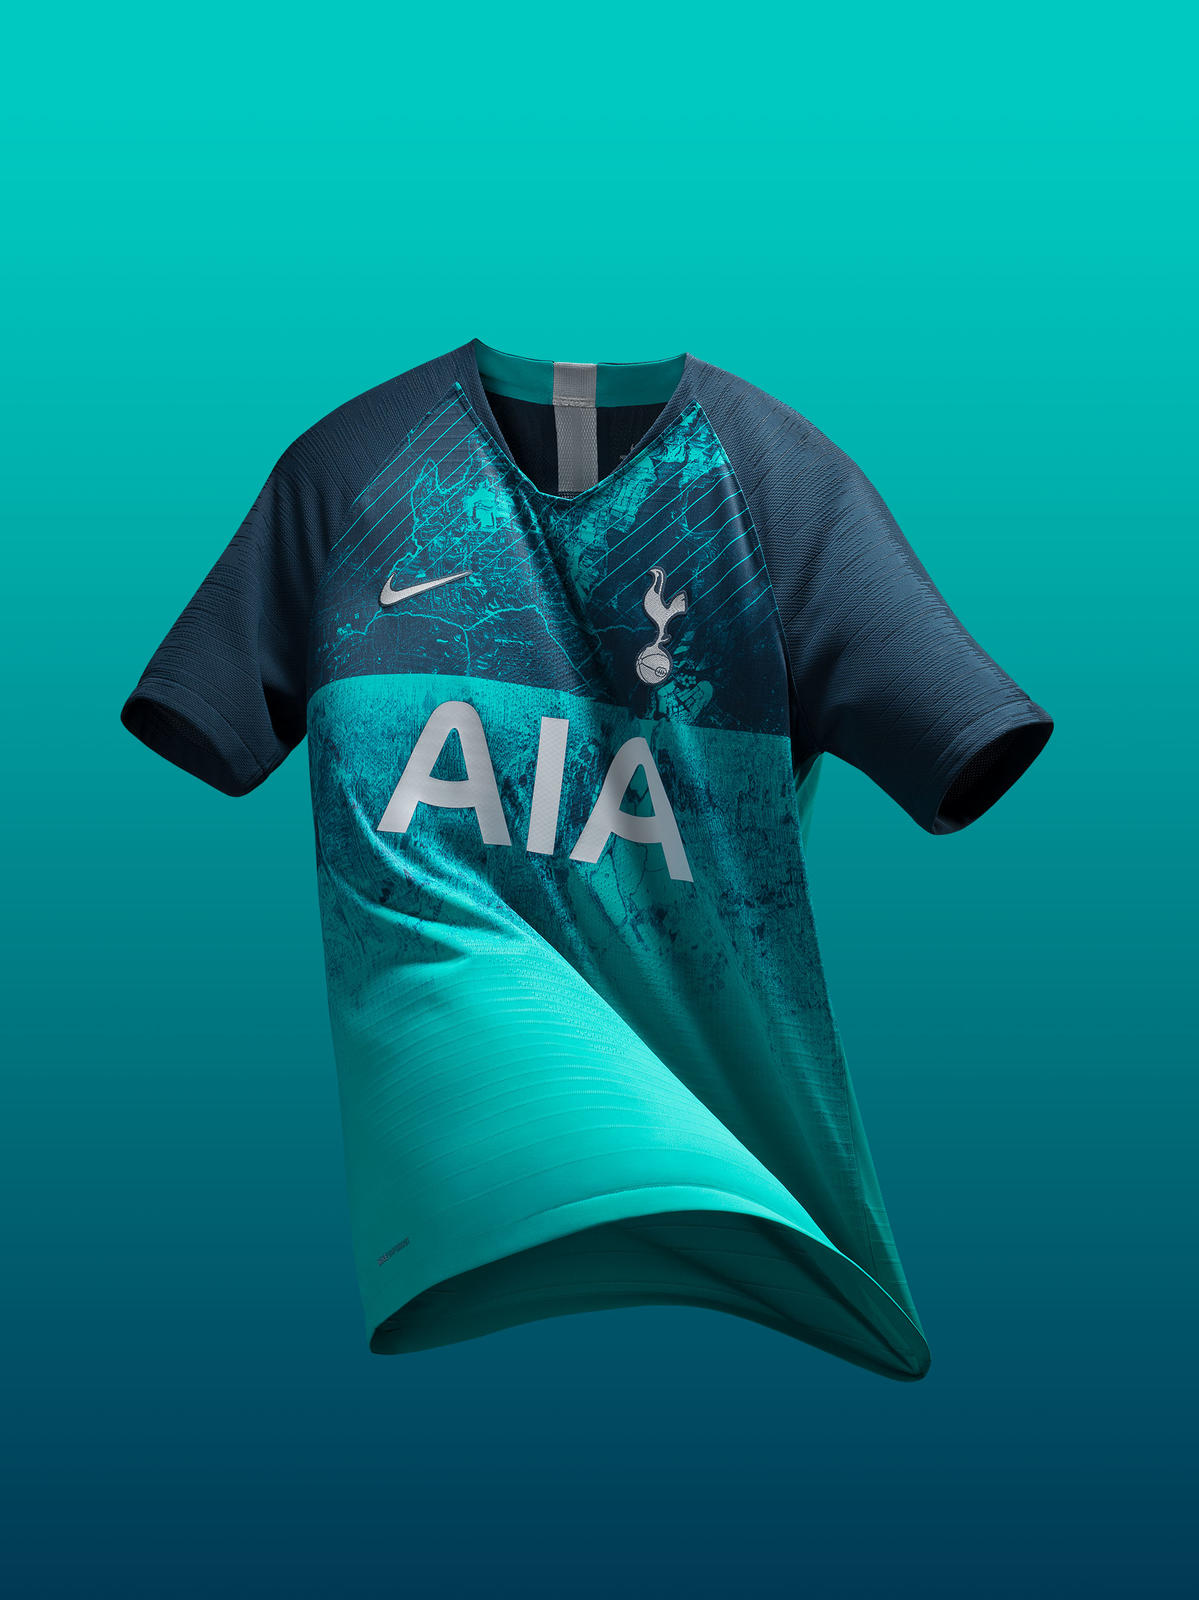 Tottenham Hotspur Goes Full N17 With Its 2018-19 Third Kit 0